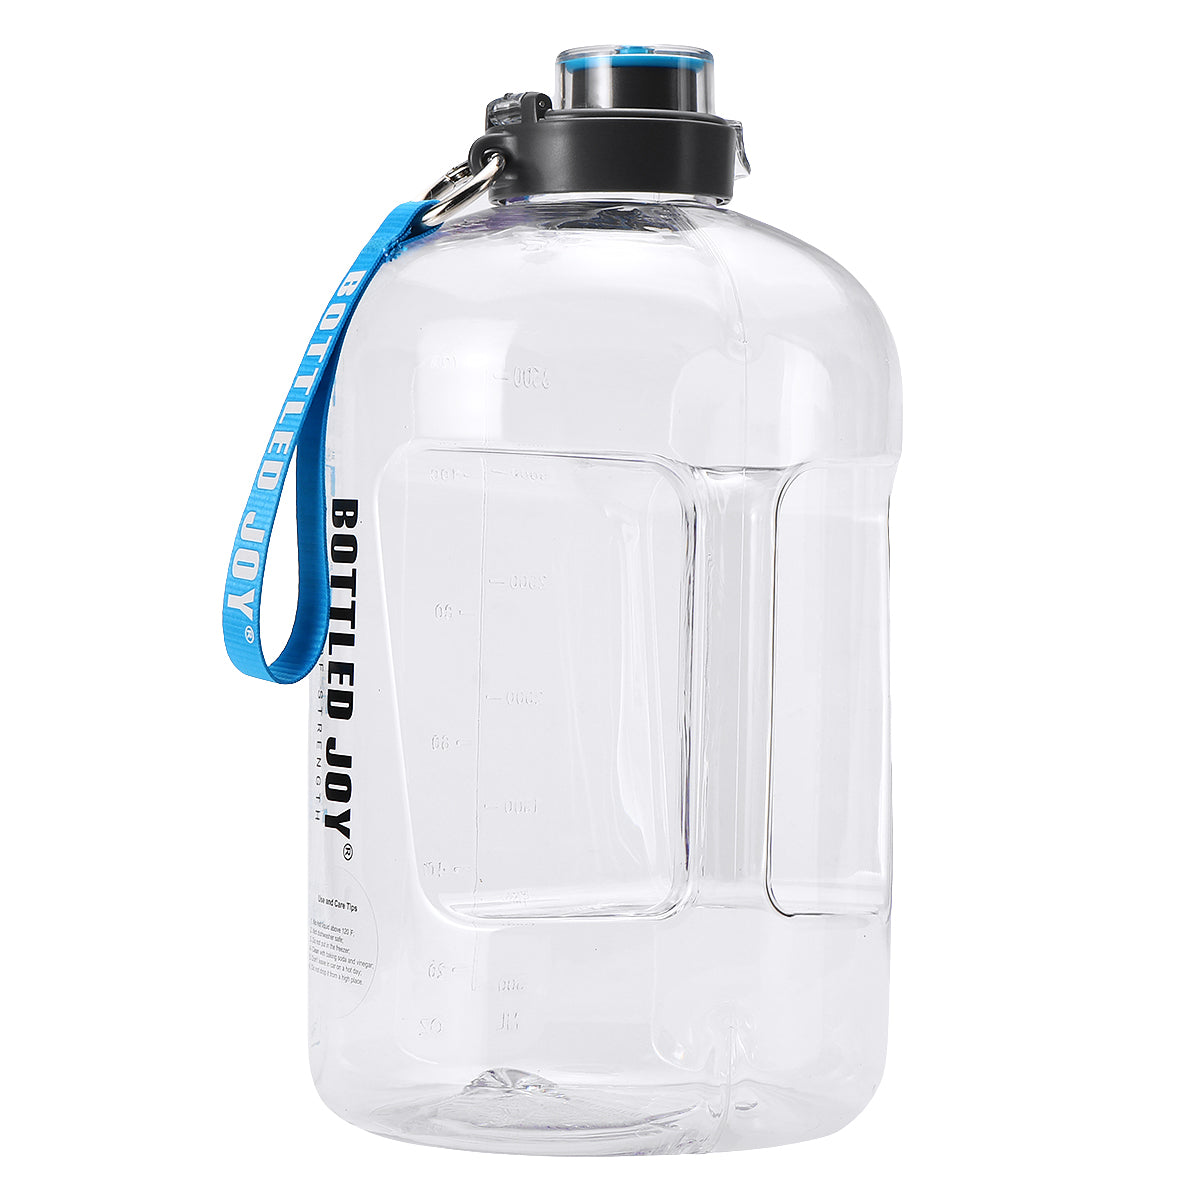 Bottled JOY Large Capacity Sports Bottle 1 Gallon / 3.78 L